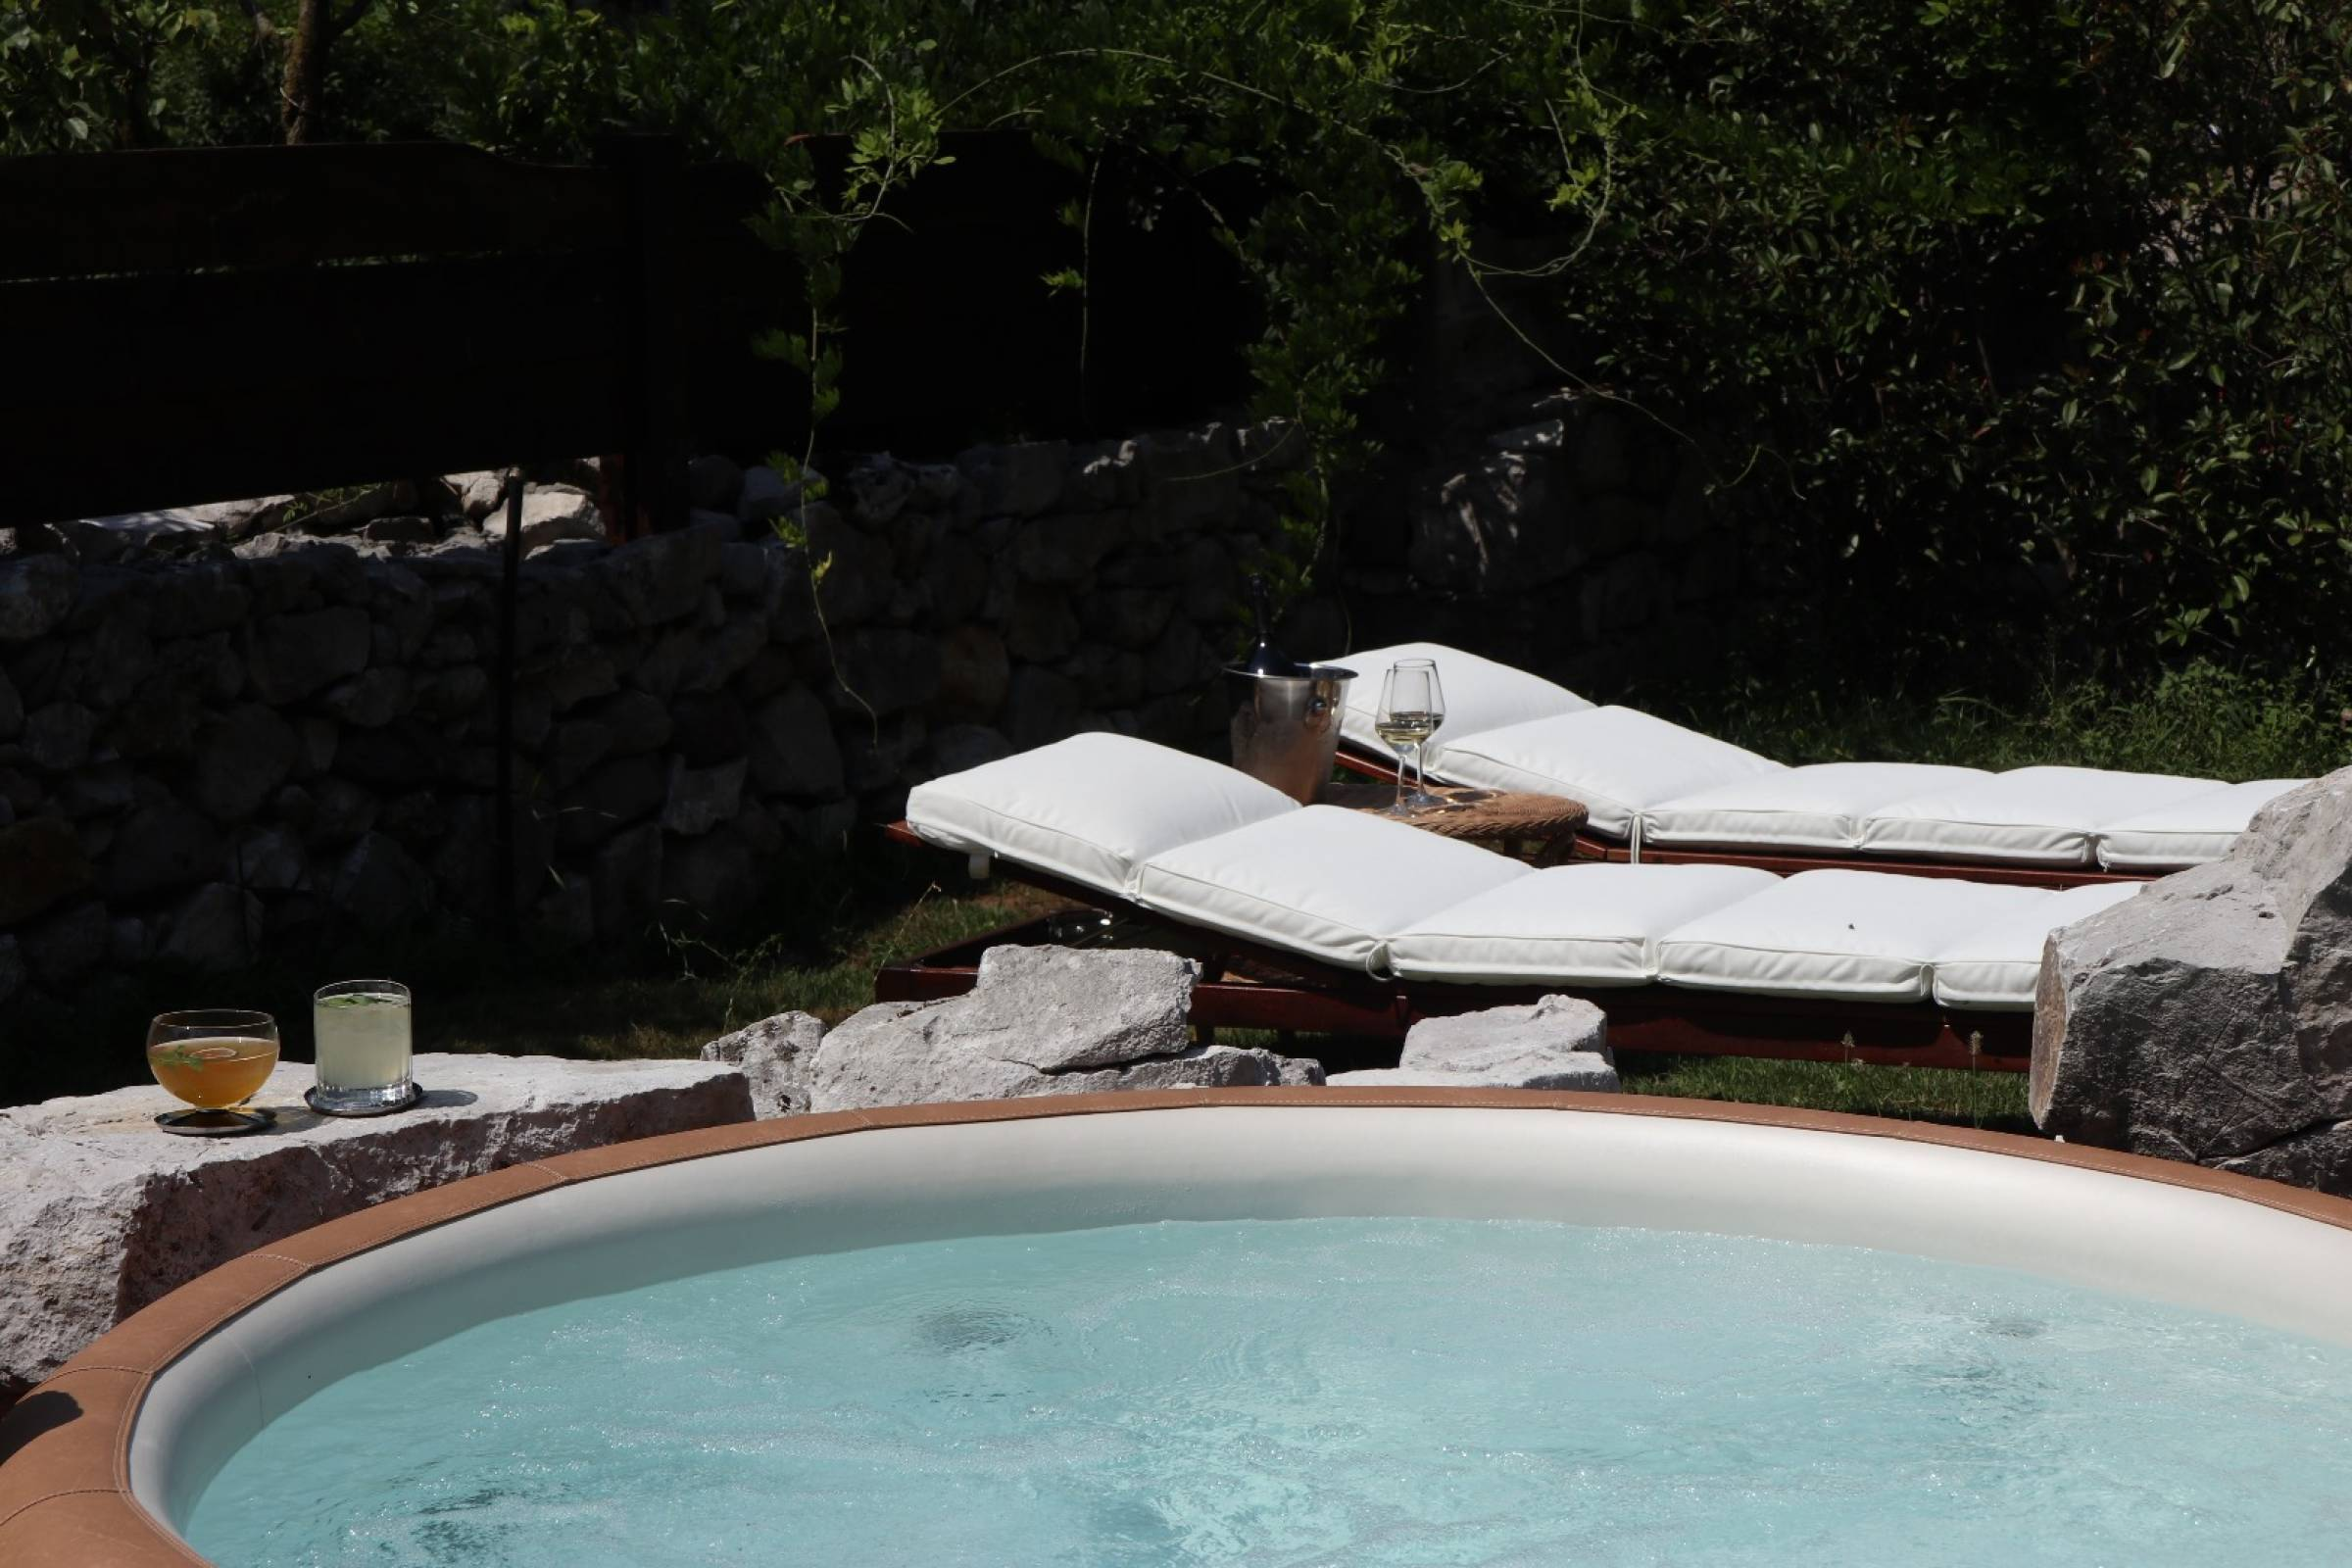 Bed and breakfast bagni di sole matera the best offers with destinia